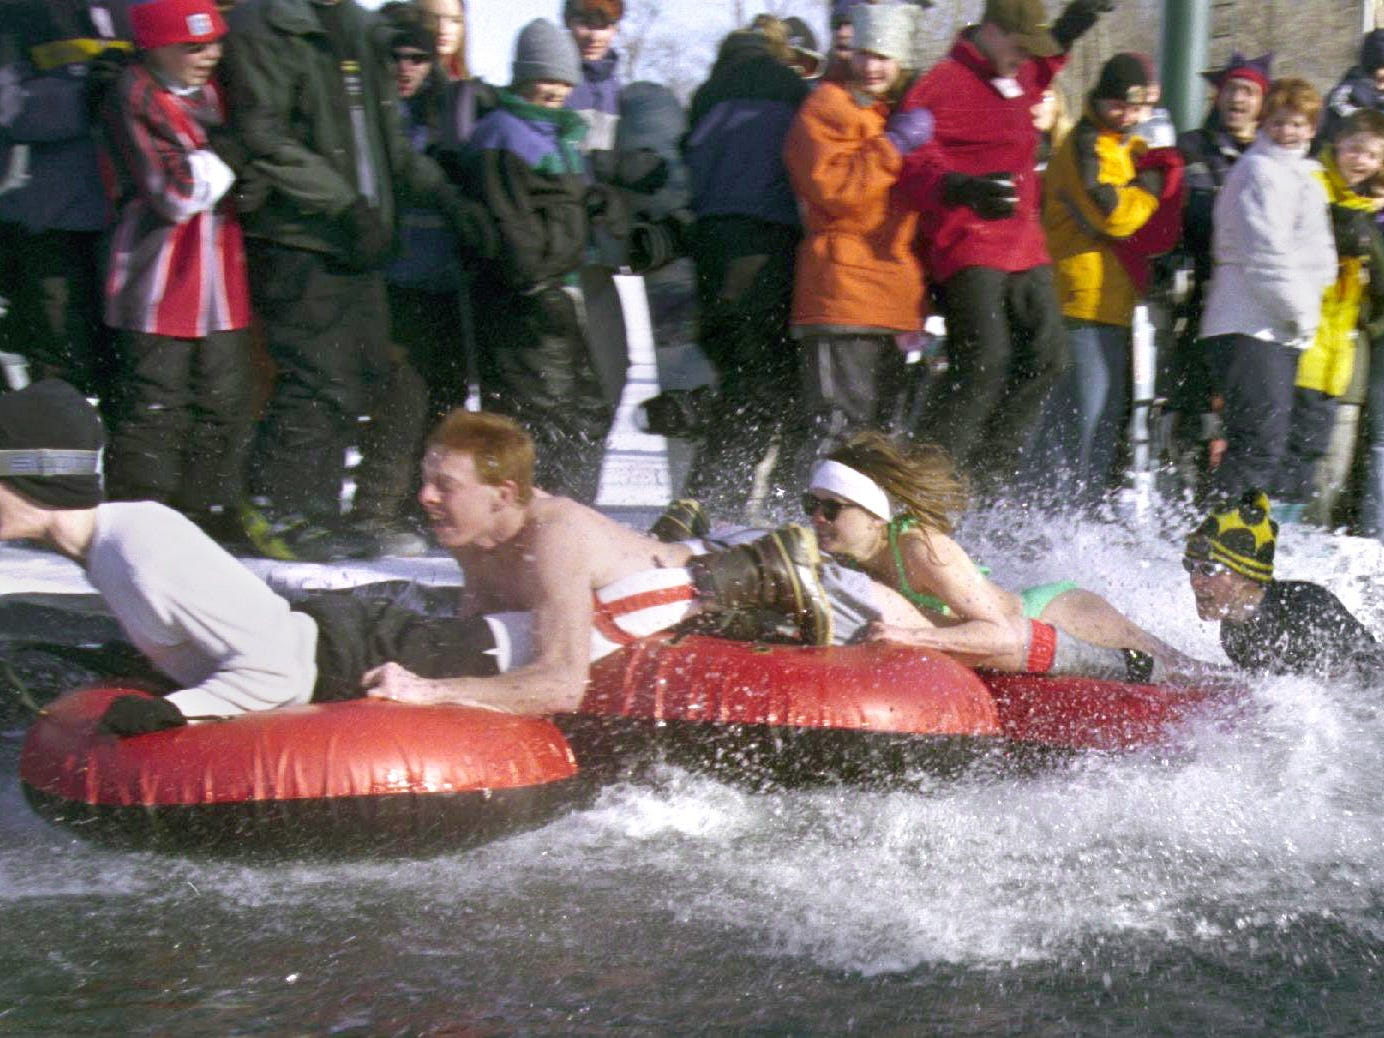 Temperatures of 28 degrees and a brisk wind didn't keep bathing suit clad people from competing in the Pond Skimming contest at Ski Roundtop on March 7, 1999 during the Subaru Spring Fest.